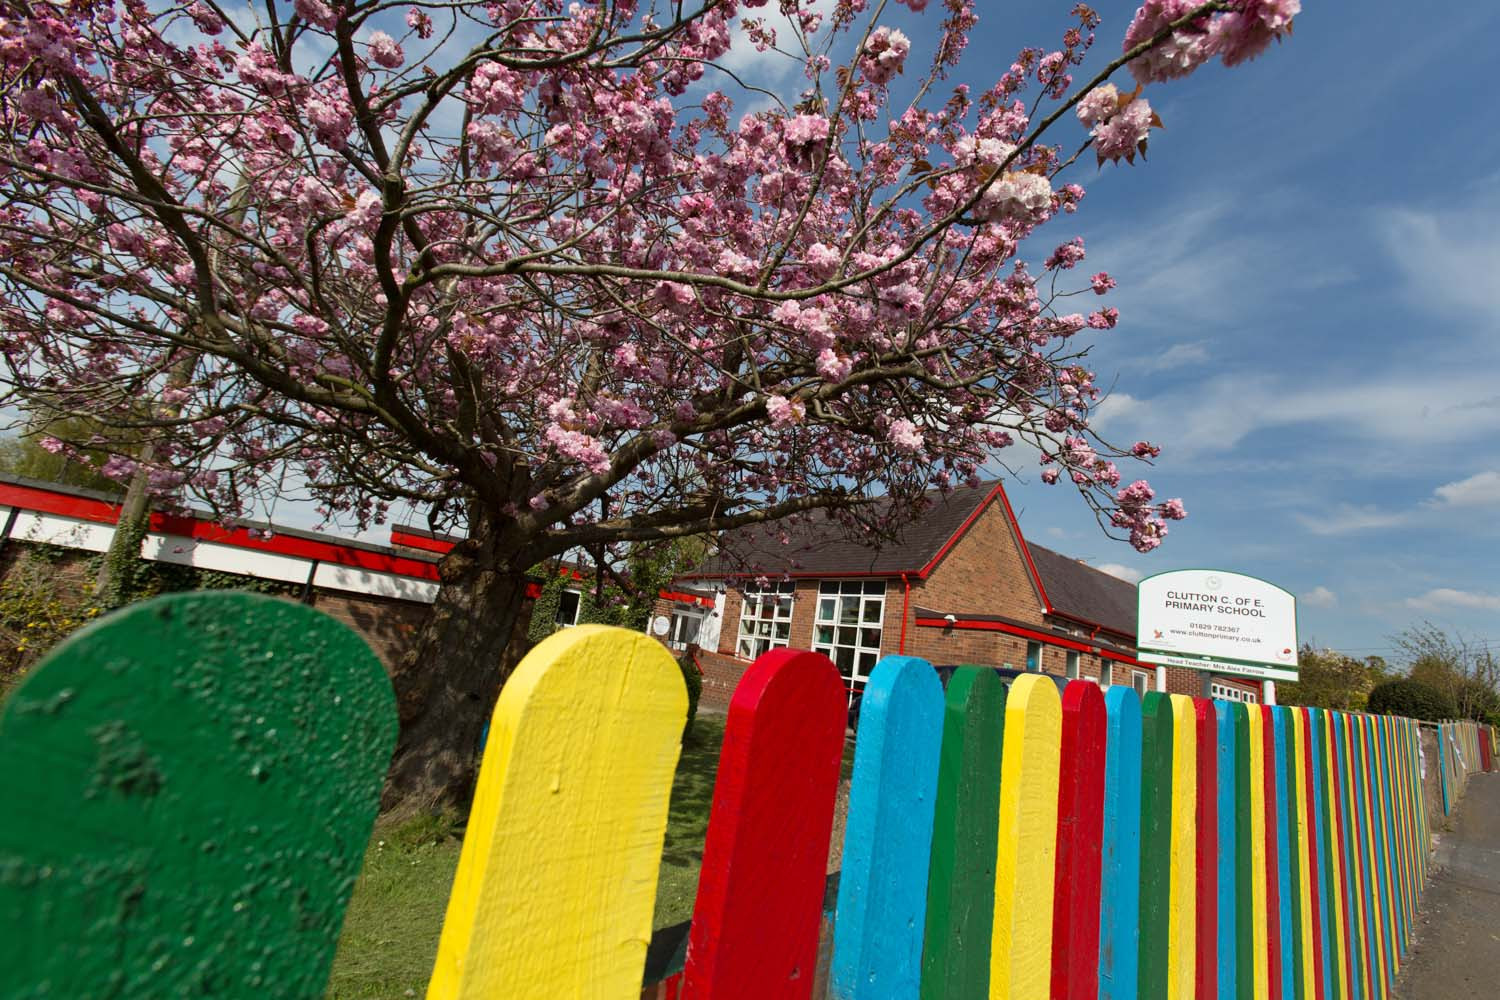 Colourful spring view of the Clutton Church of England Primary School.